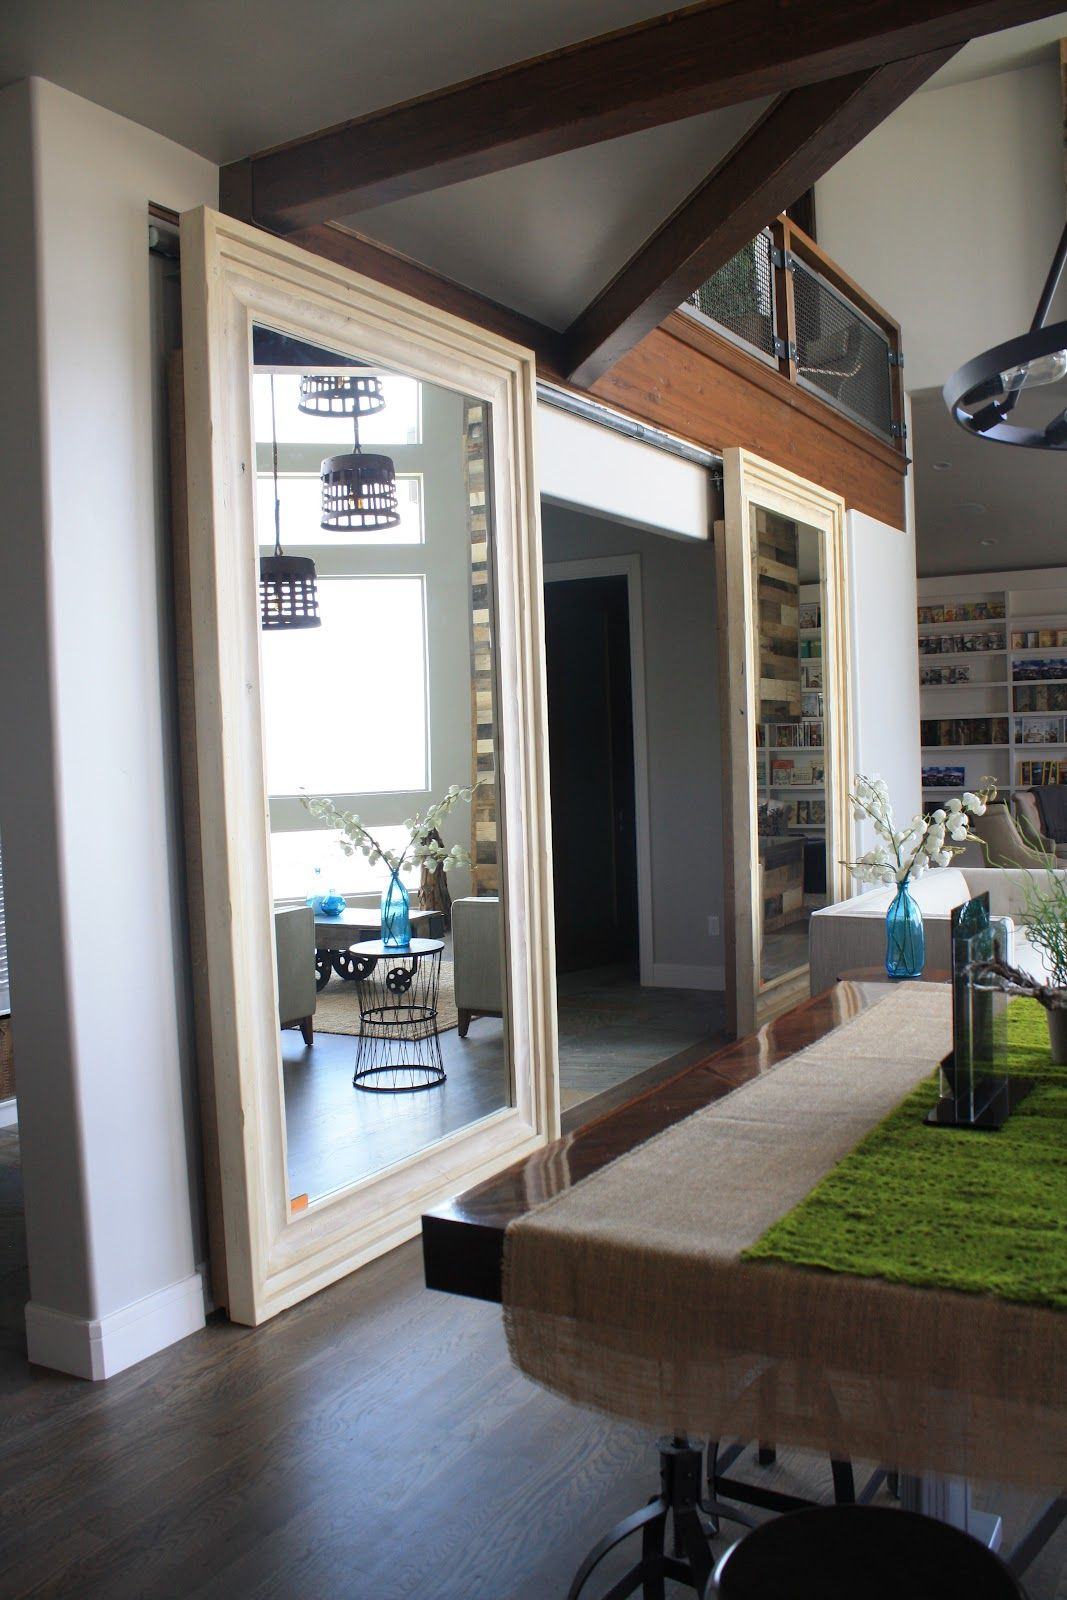 Great idea for sliding doors mirrored 6th street design for Home design utah county